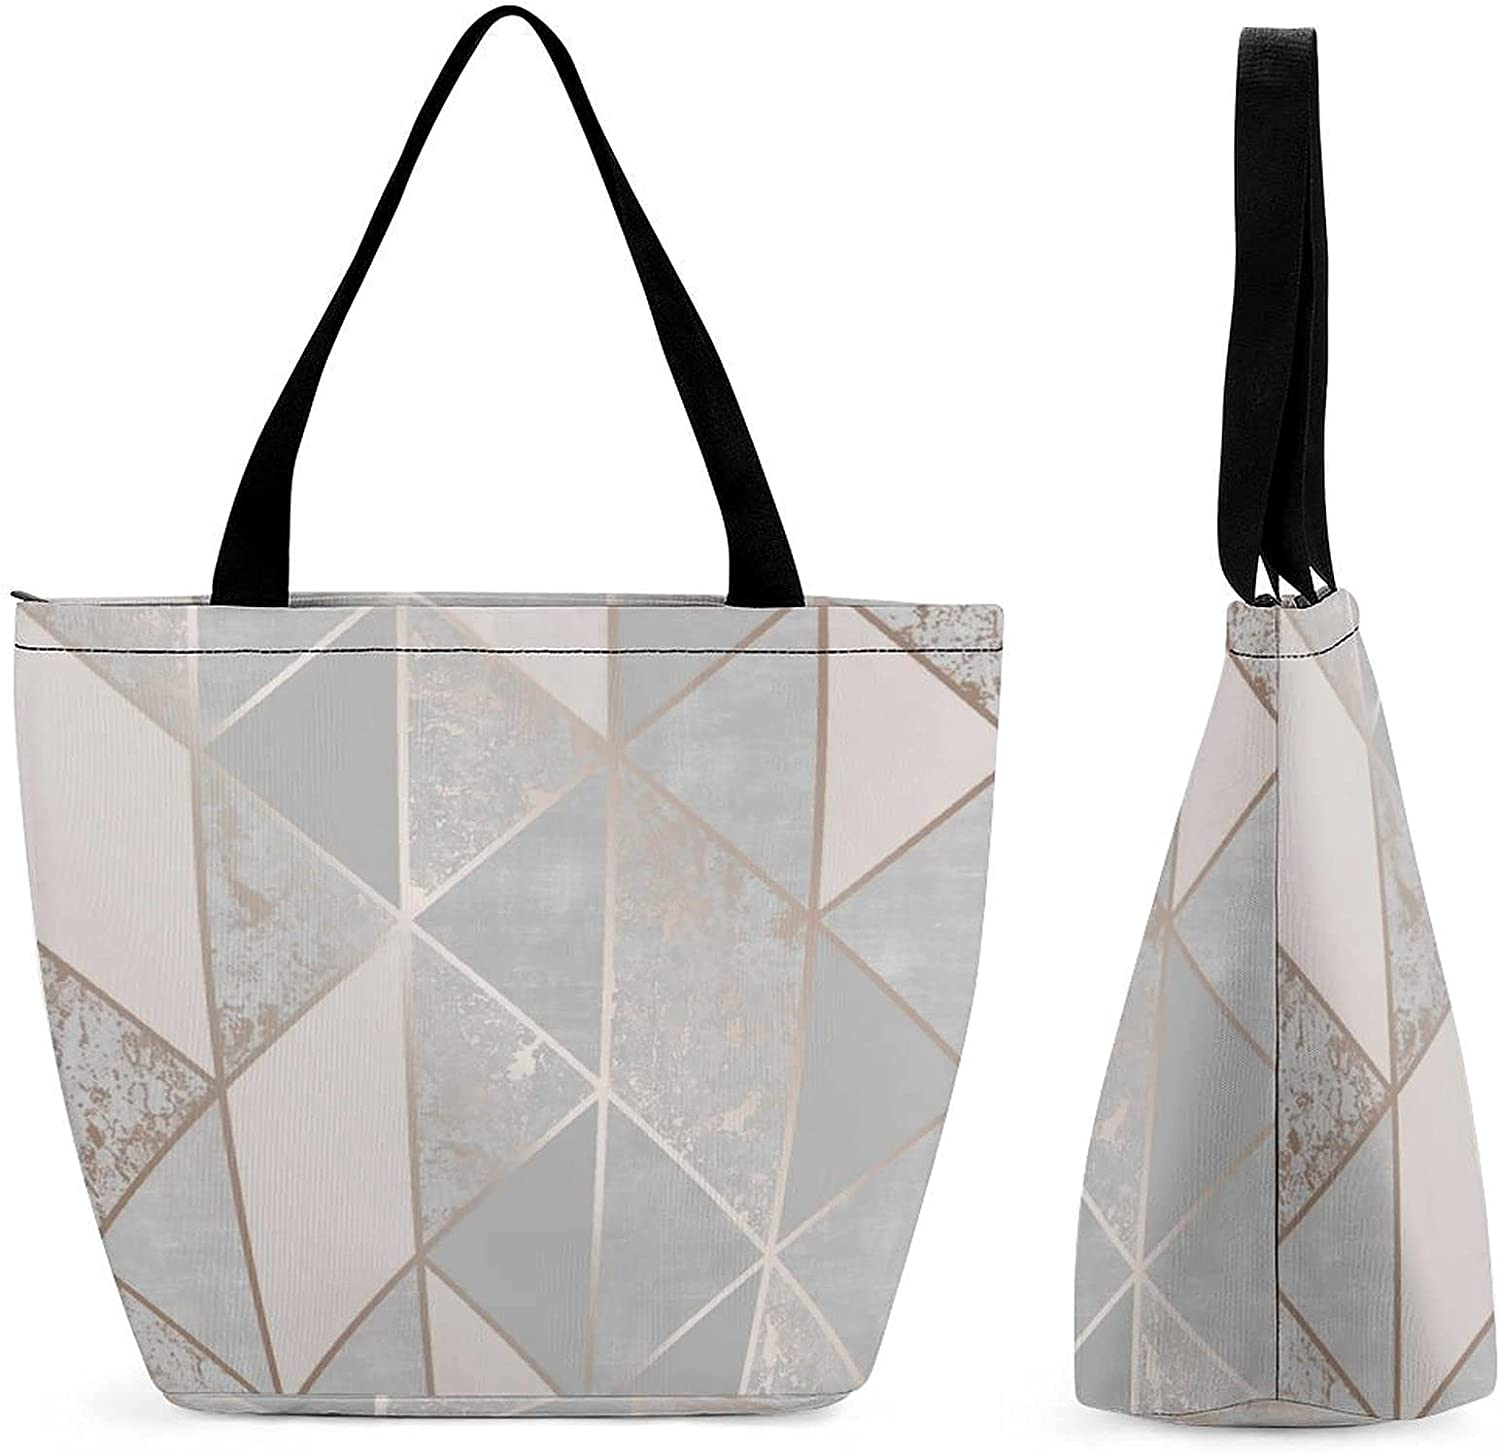 Outstanding Rose Gold Blown Max 69% OFF Marble Womens' Bag Capacity Large Tote Reusable